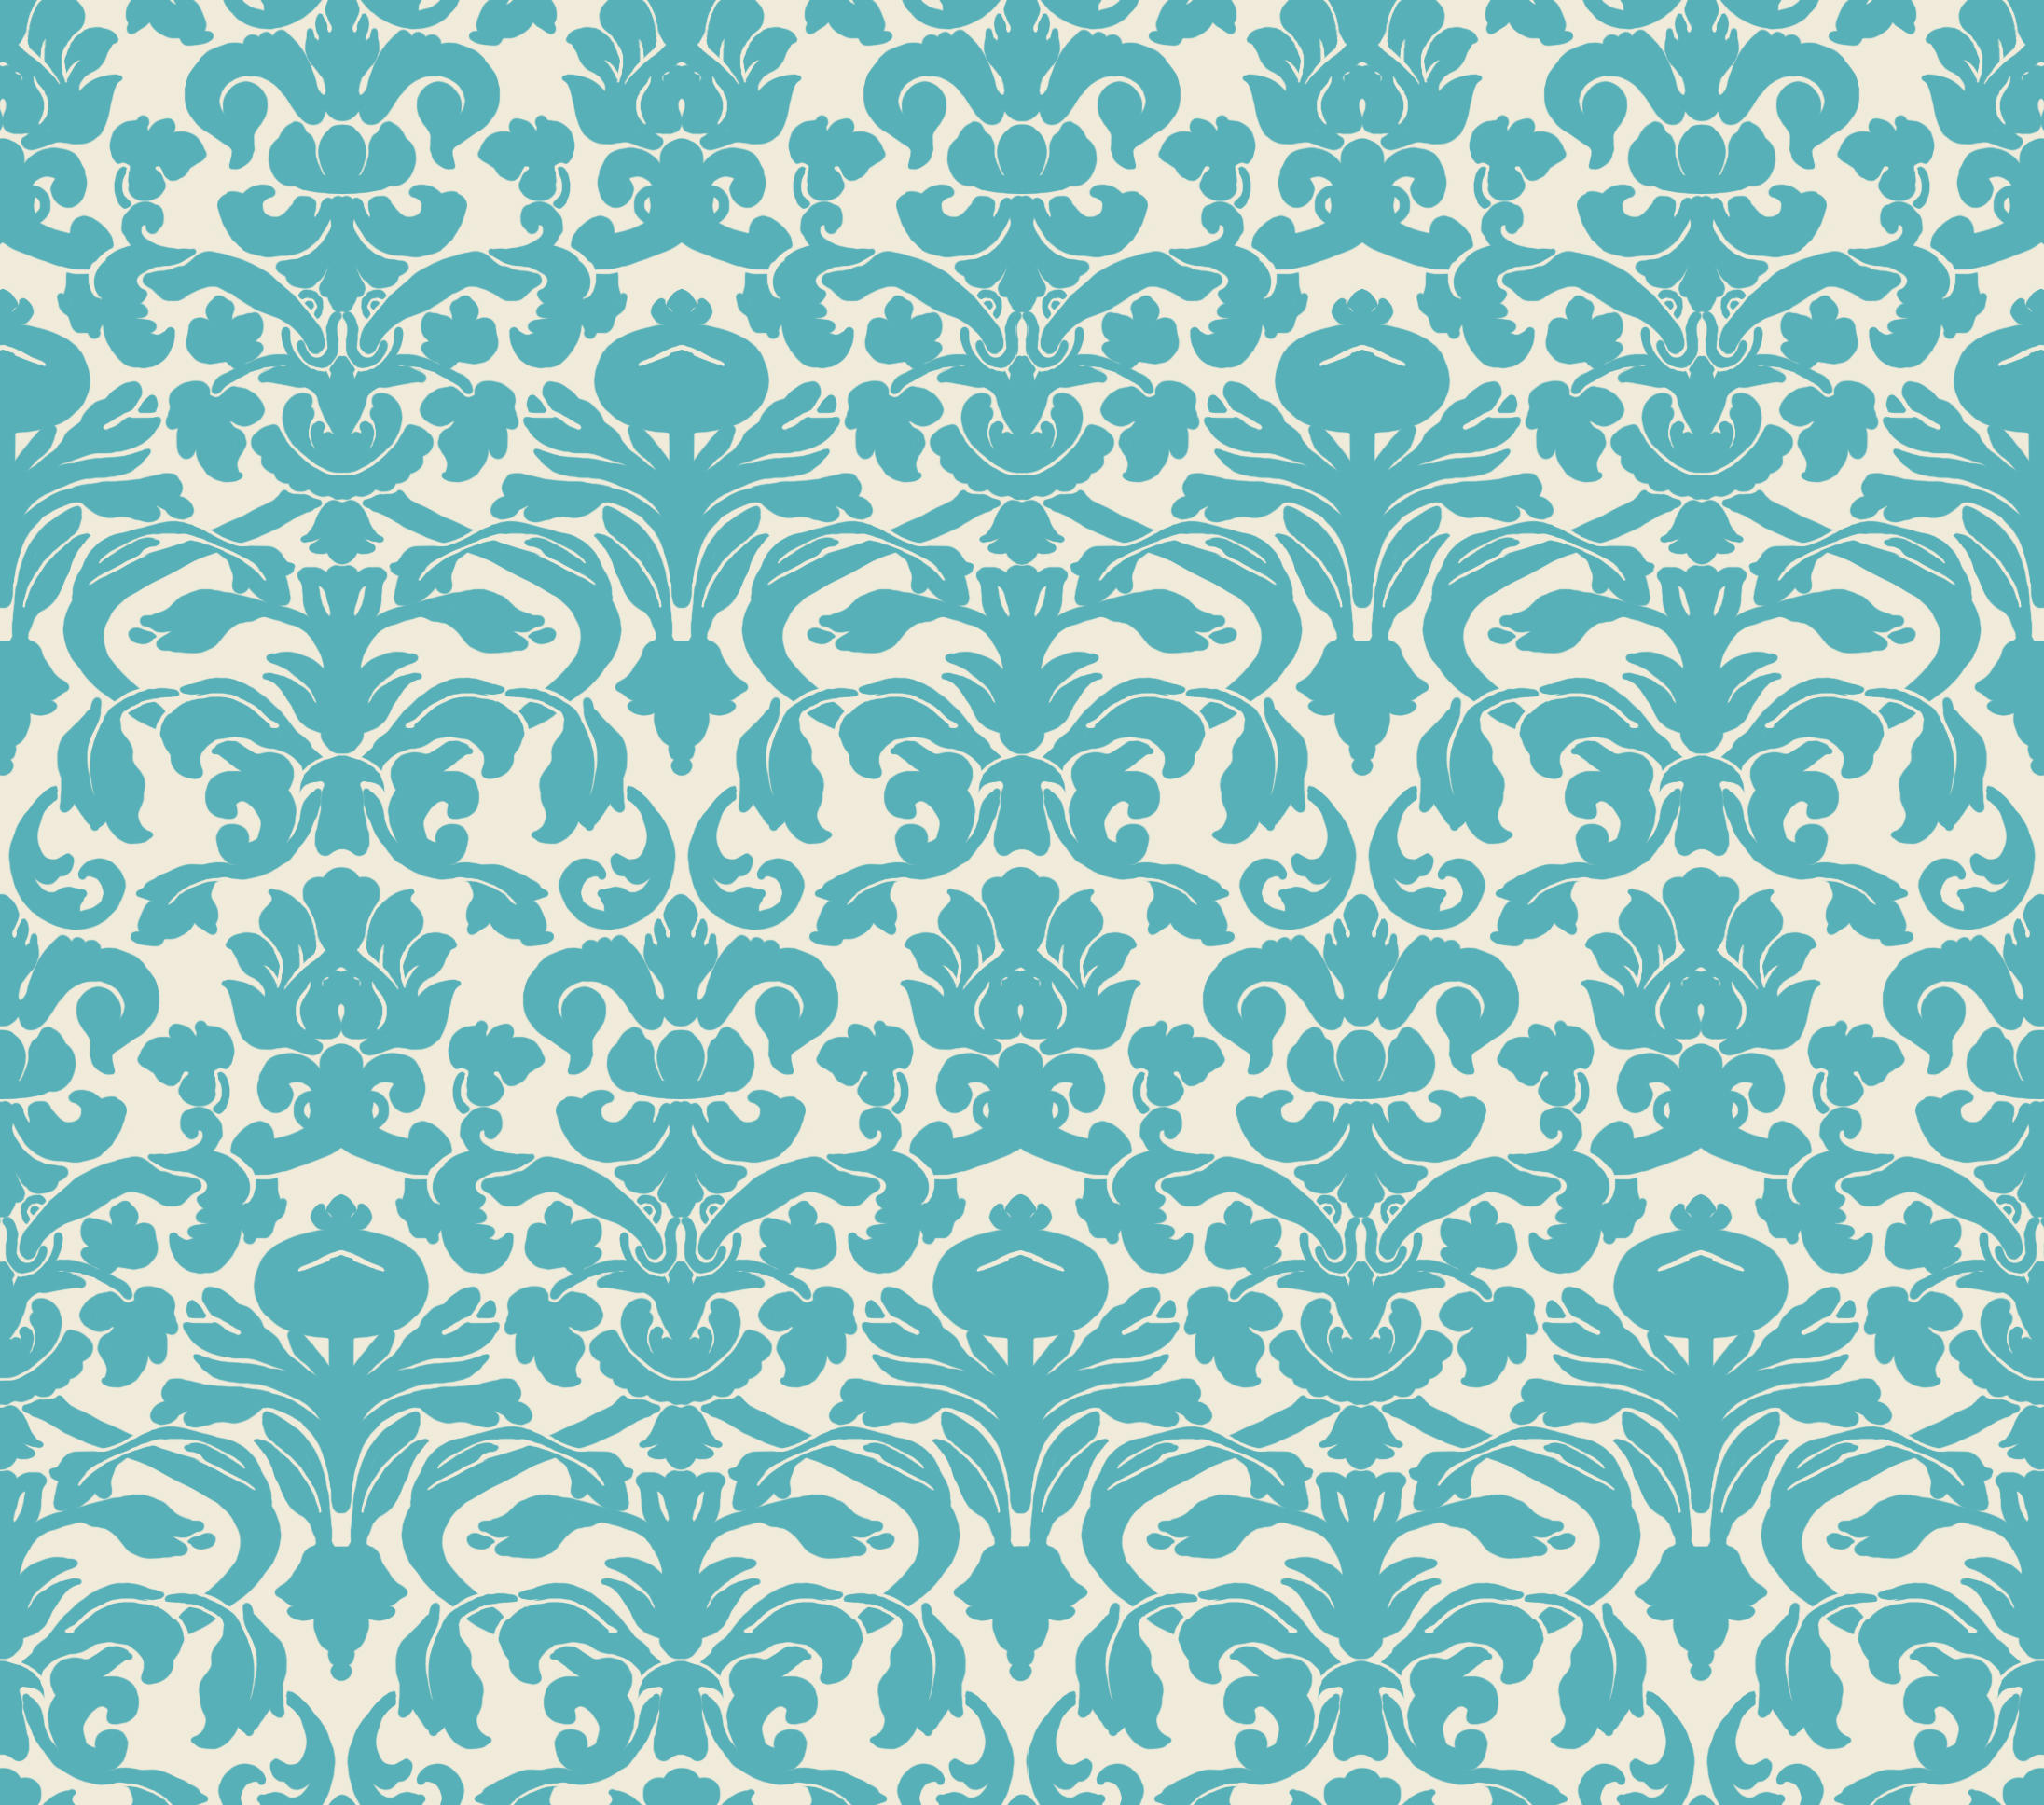 Wall Paper Patterns damask wallpaper patterns